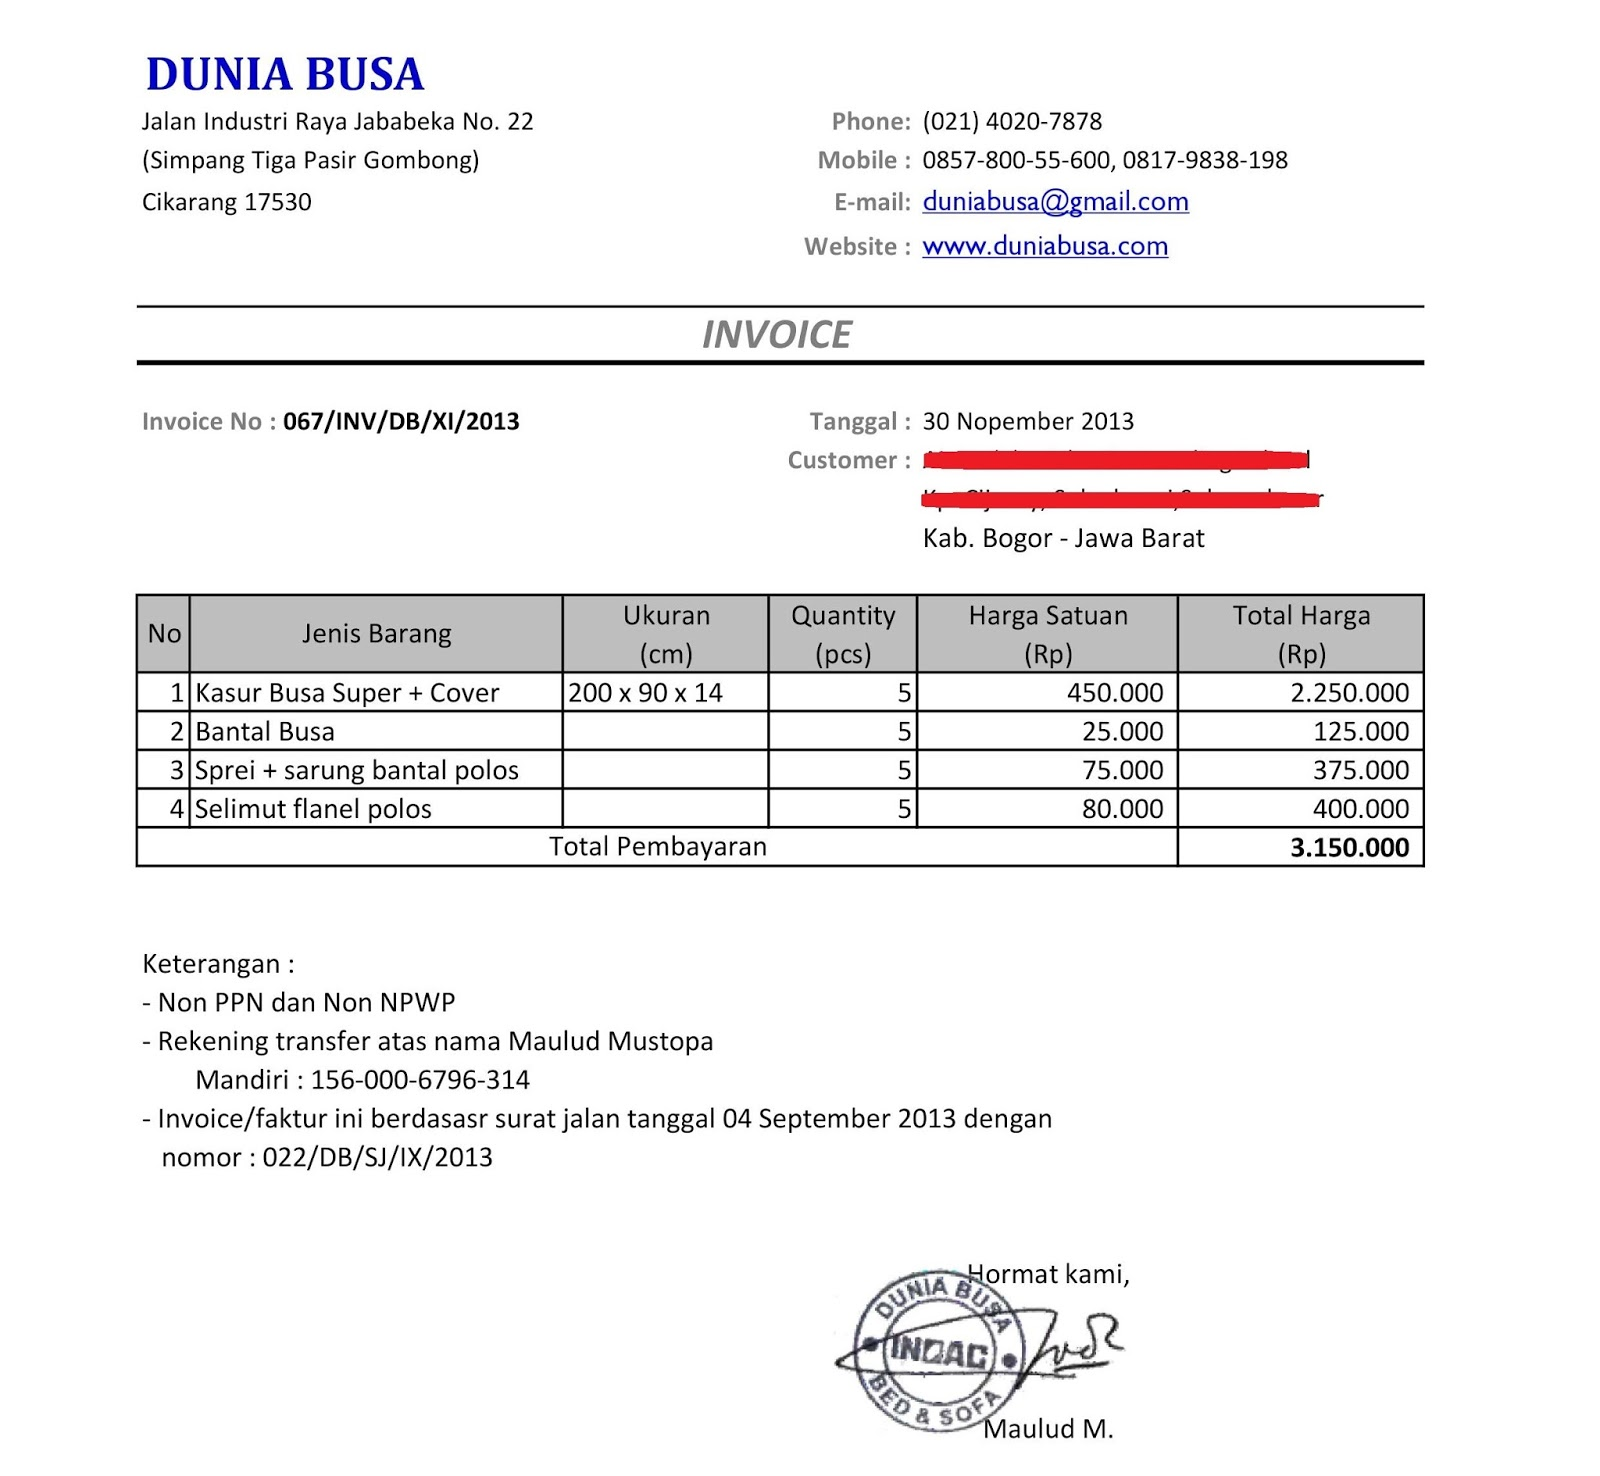 Adoringacklesus  Nice Free Invoice Online  Create Invoice Online  Invoice Template  With Fetching Contoh Format Invoice Atau Surat Tagihan  Brankas Arsip  Free Invoice Online With Divine How To Send An Invoice Through Paypal Also Toll By Plate Com Invoice In Addition Plumbing Invoice And Commercial Invoice Form As Well As Catering Invoice Additionally Factoring Invoicing From Sklepco With Adoringacklesus  Fetching Free Invoice Online  Create Invoice Online  Invoice Template  With Divine Contoh Format Invoice Atau Surat Tagihan  Brankas Arsip  Free Invoice Online And Nice How To Send An Invoice Through Paypal Also Toll By Plate Com Invoice In Addition Plumbing Invoice From Sklepco